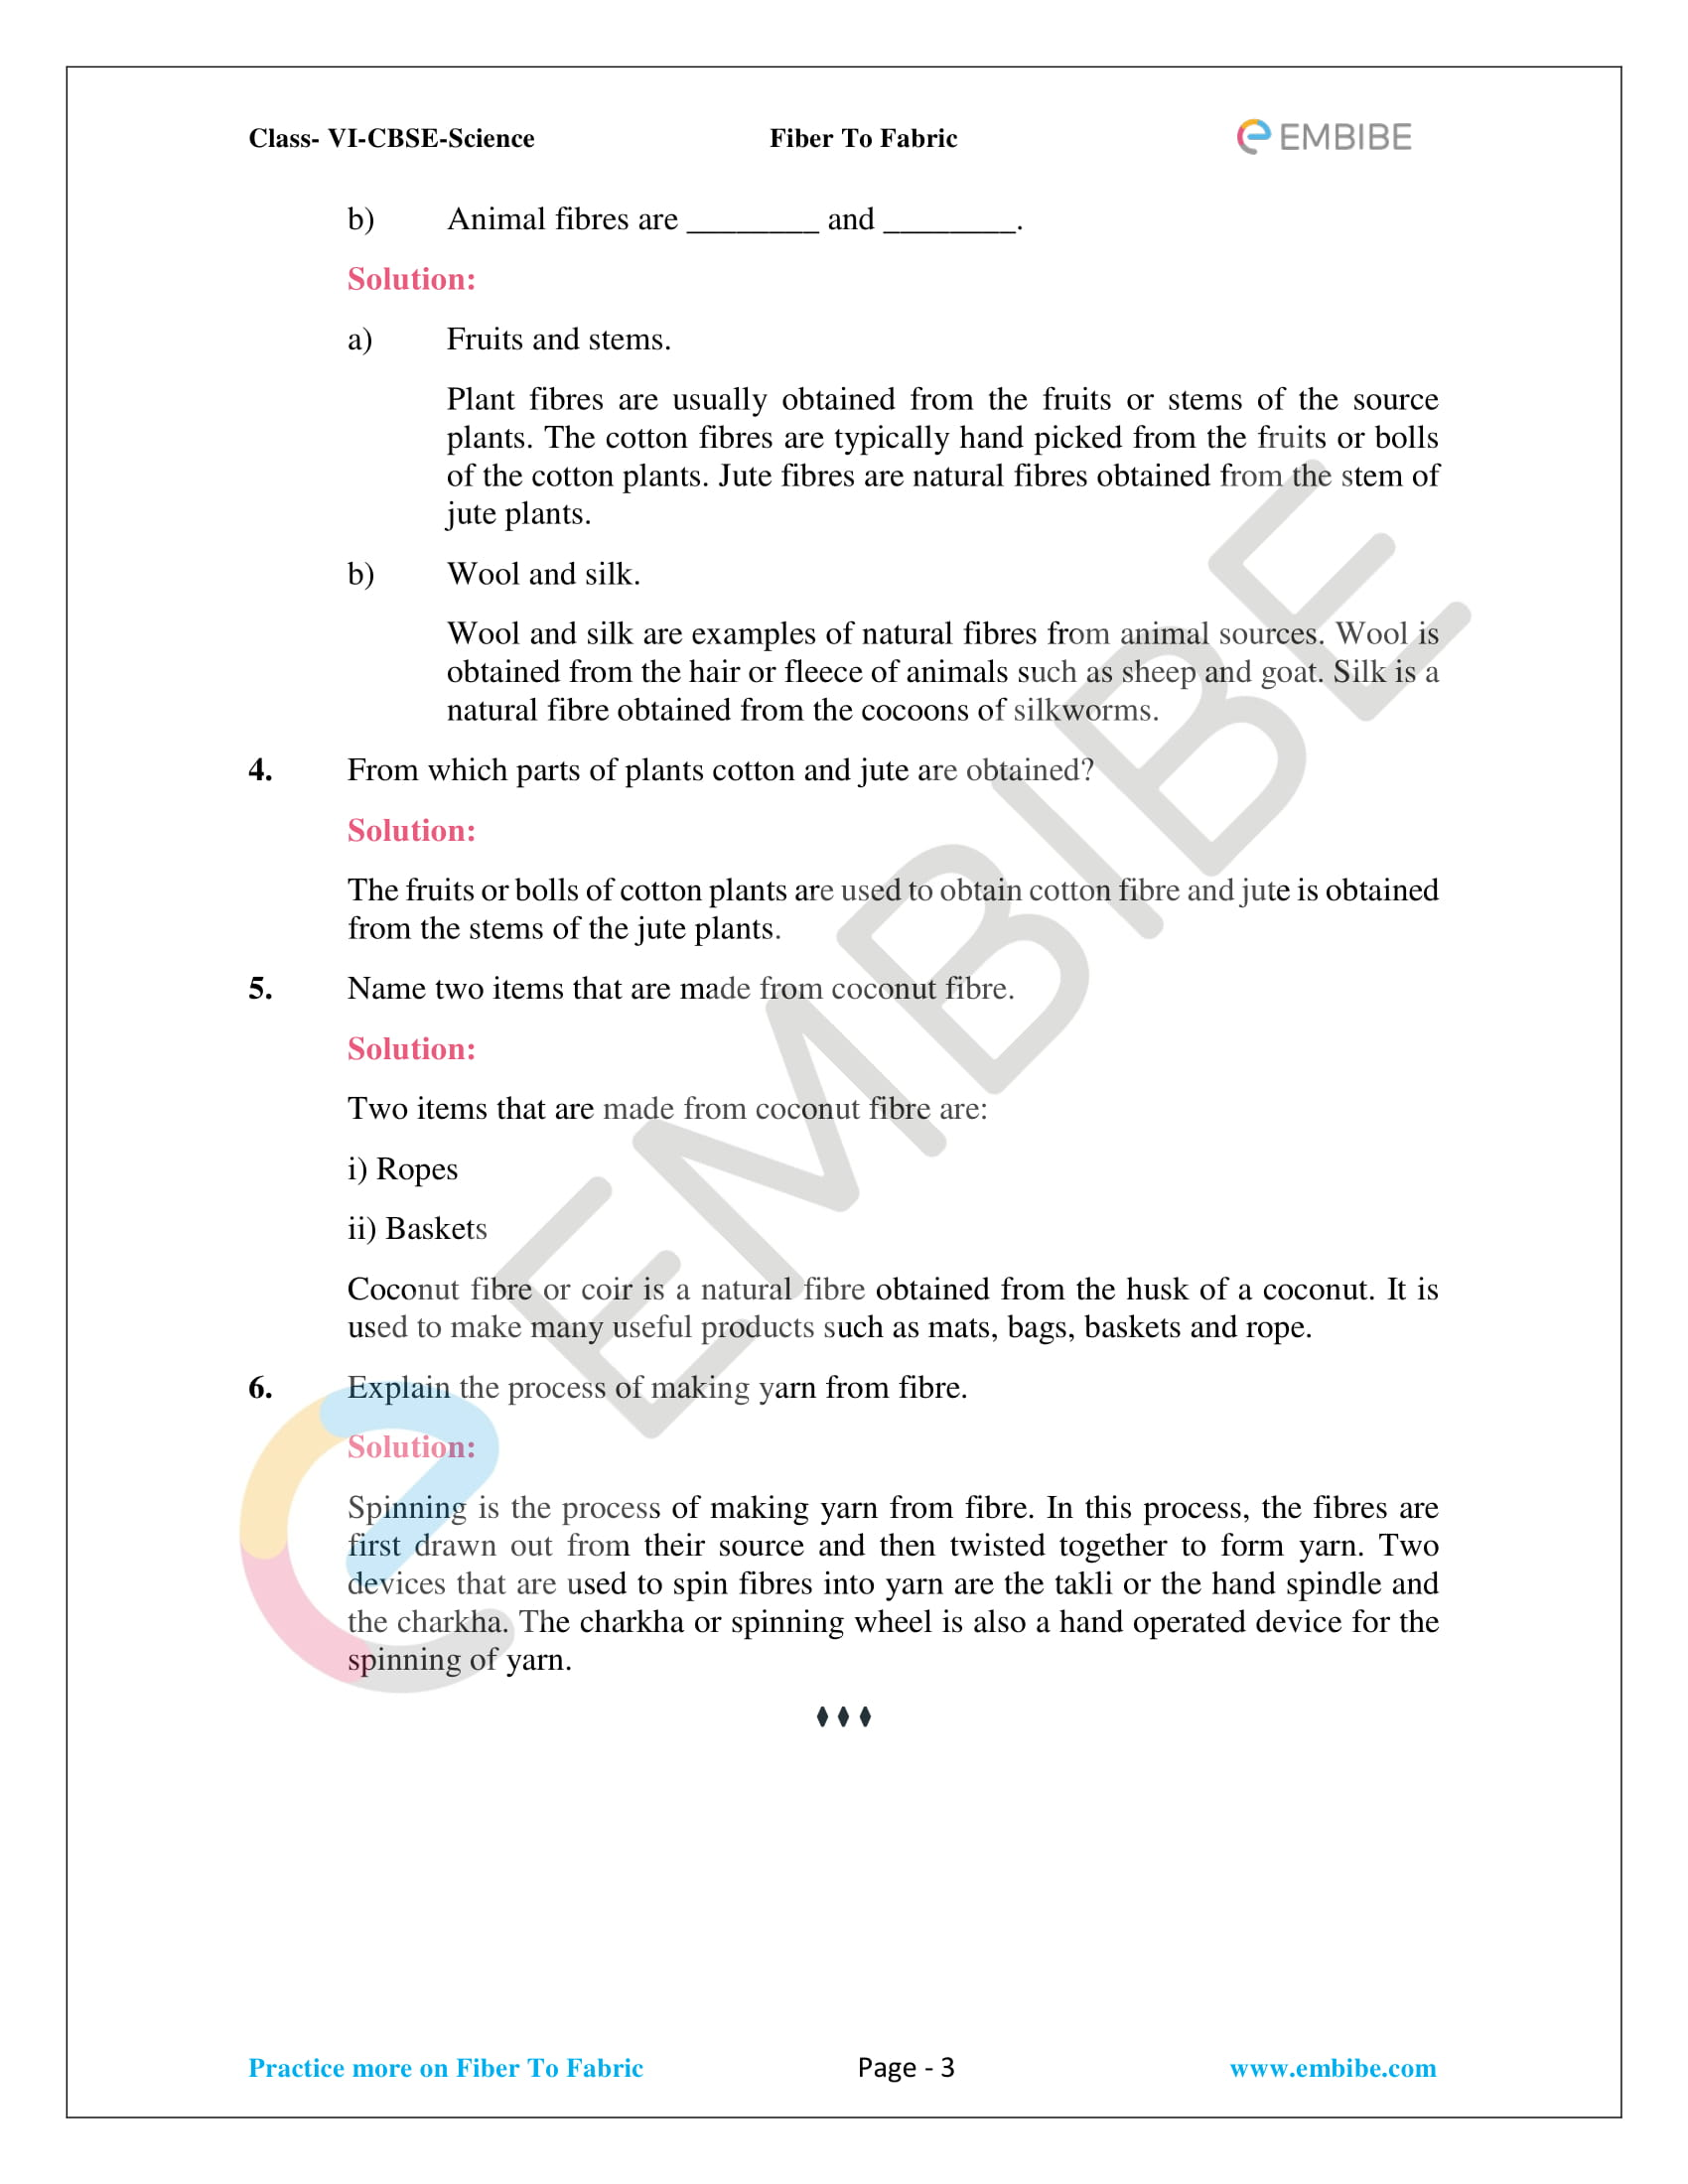 NCERT Solutions For Class 6 Science Chapter 3: Fibre To